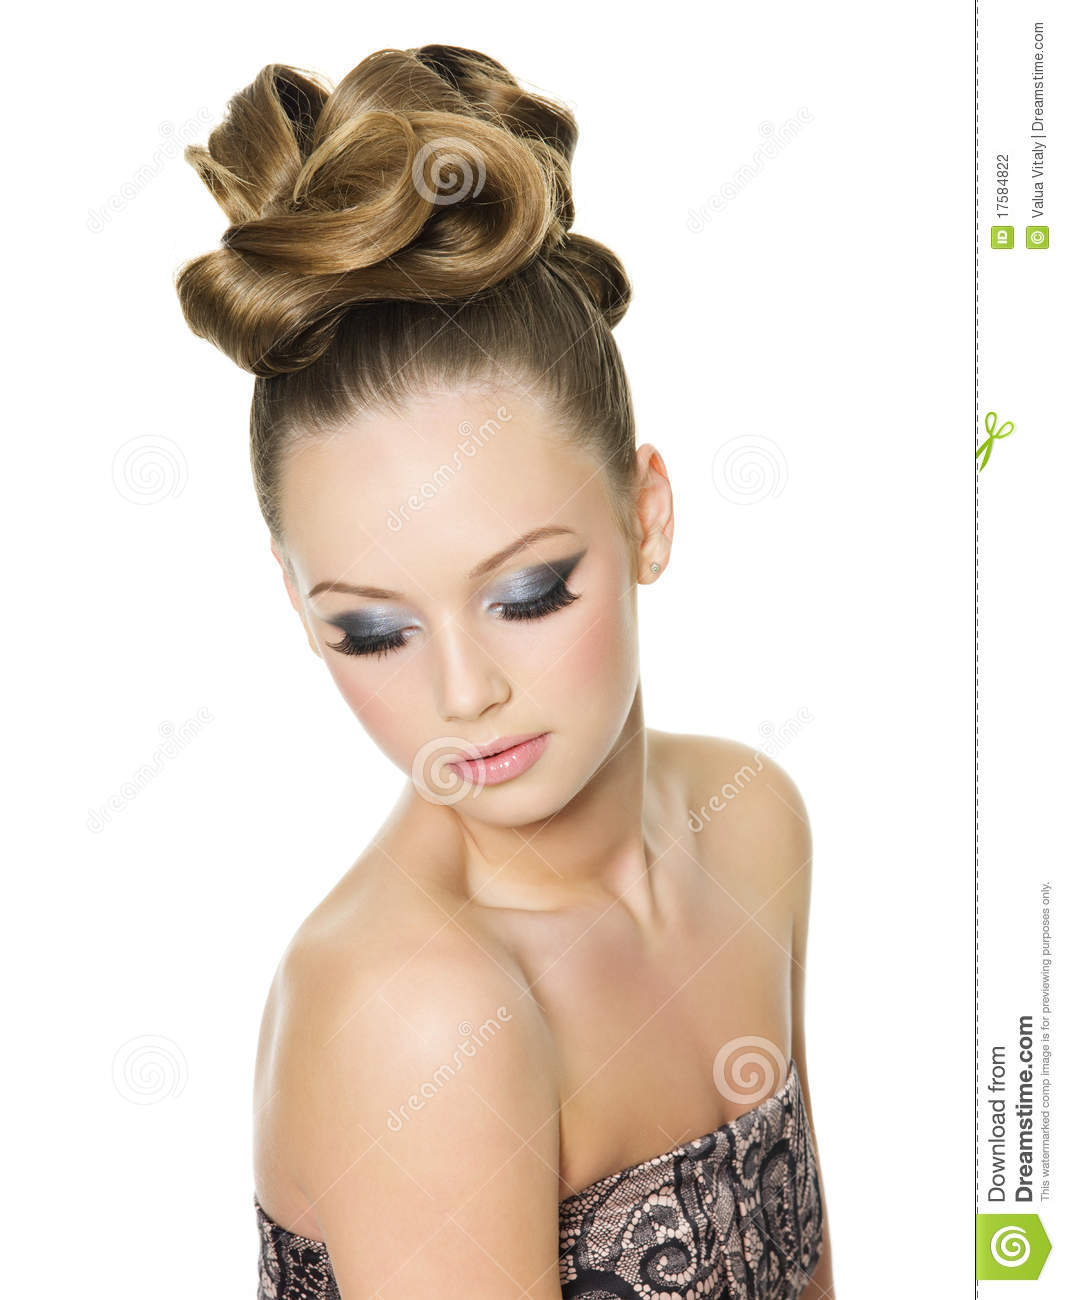 Teen Girl With Fashion Hairstyle And Make Up Stock Photo Image Of Modern Caucasian 17584822